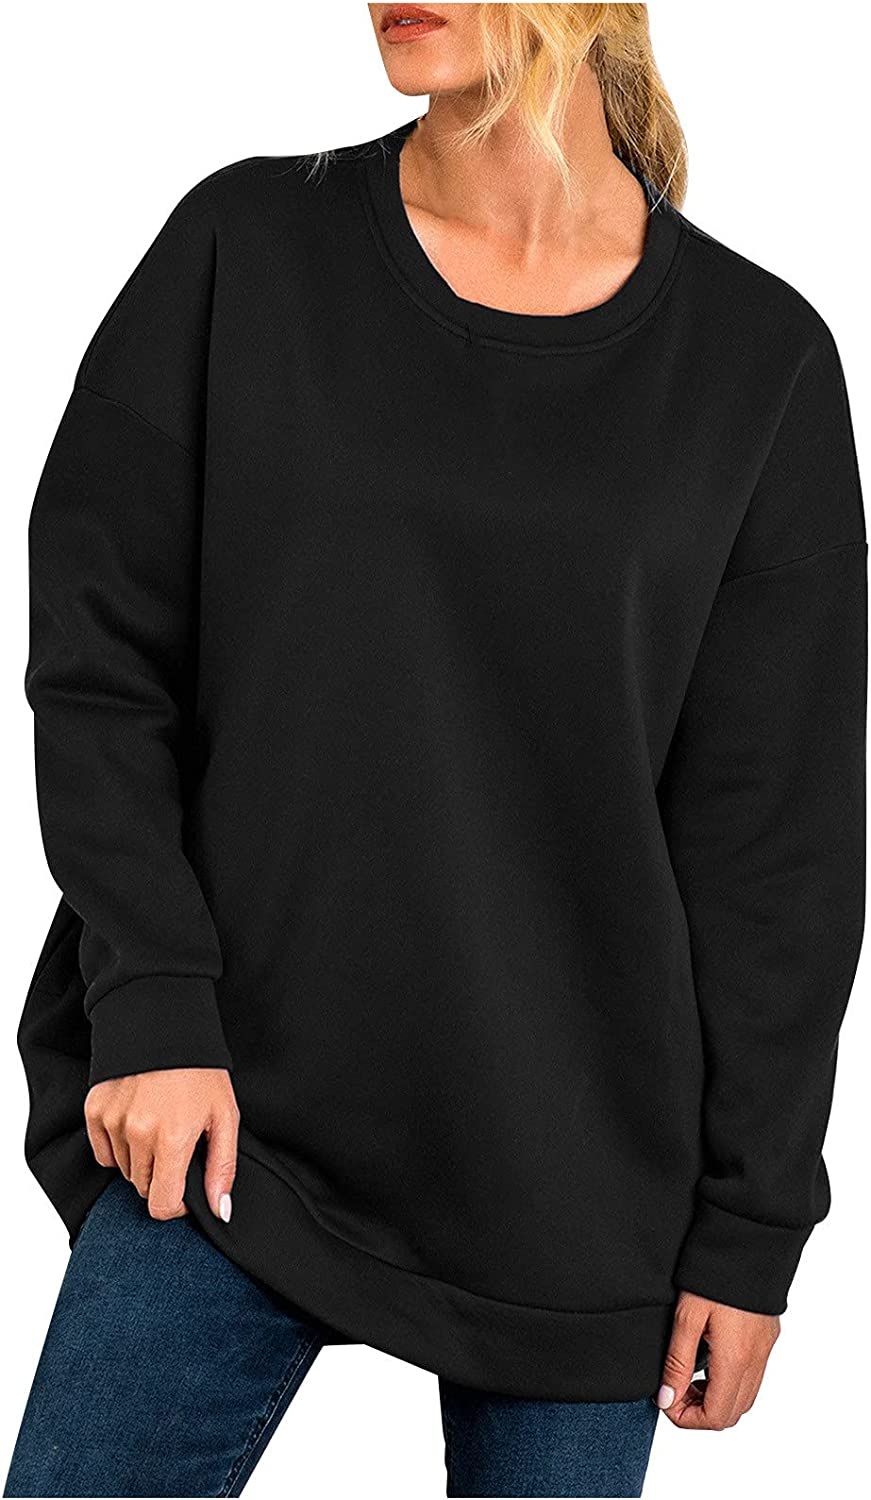 women's casual solid basic sweater soft comfortable crewneck long sleeve pullover tee ladies trendy autumn blouse tops